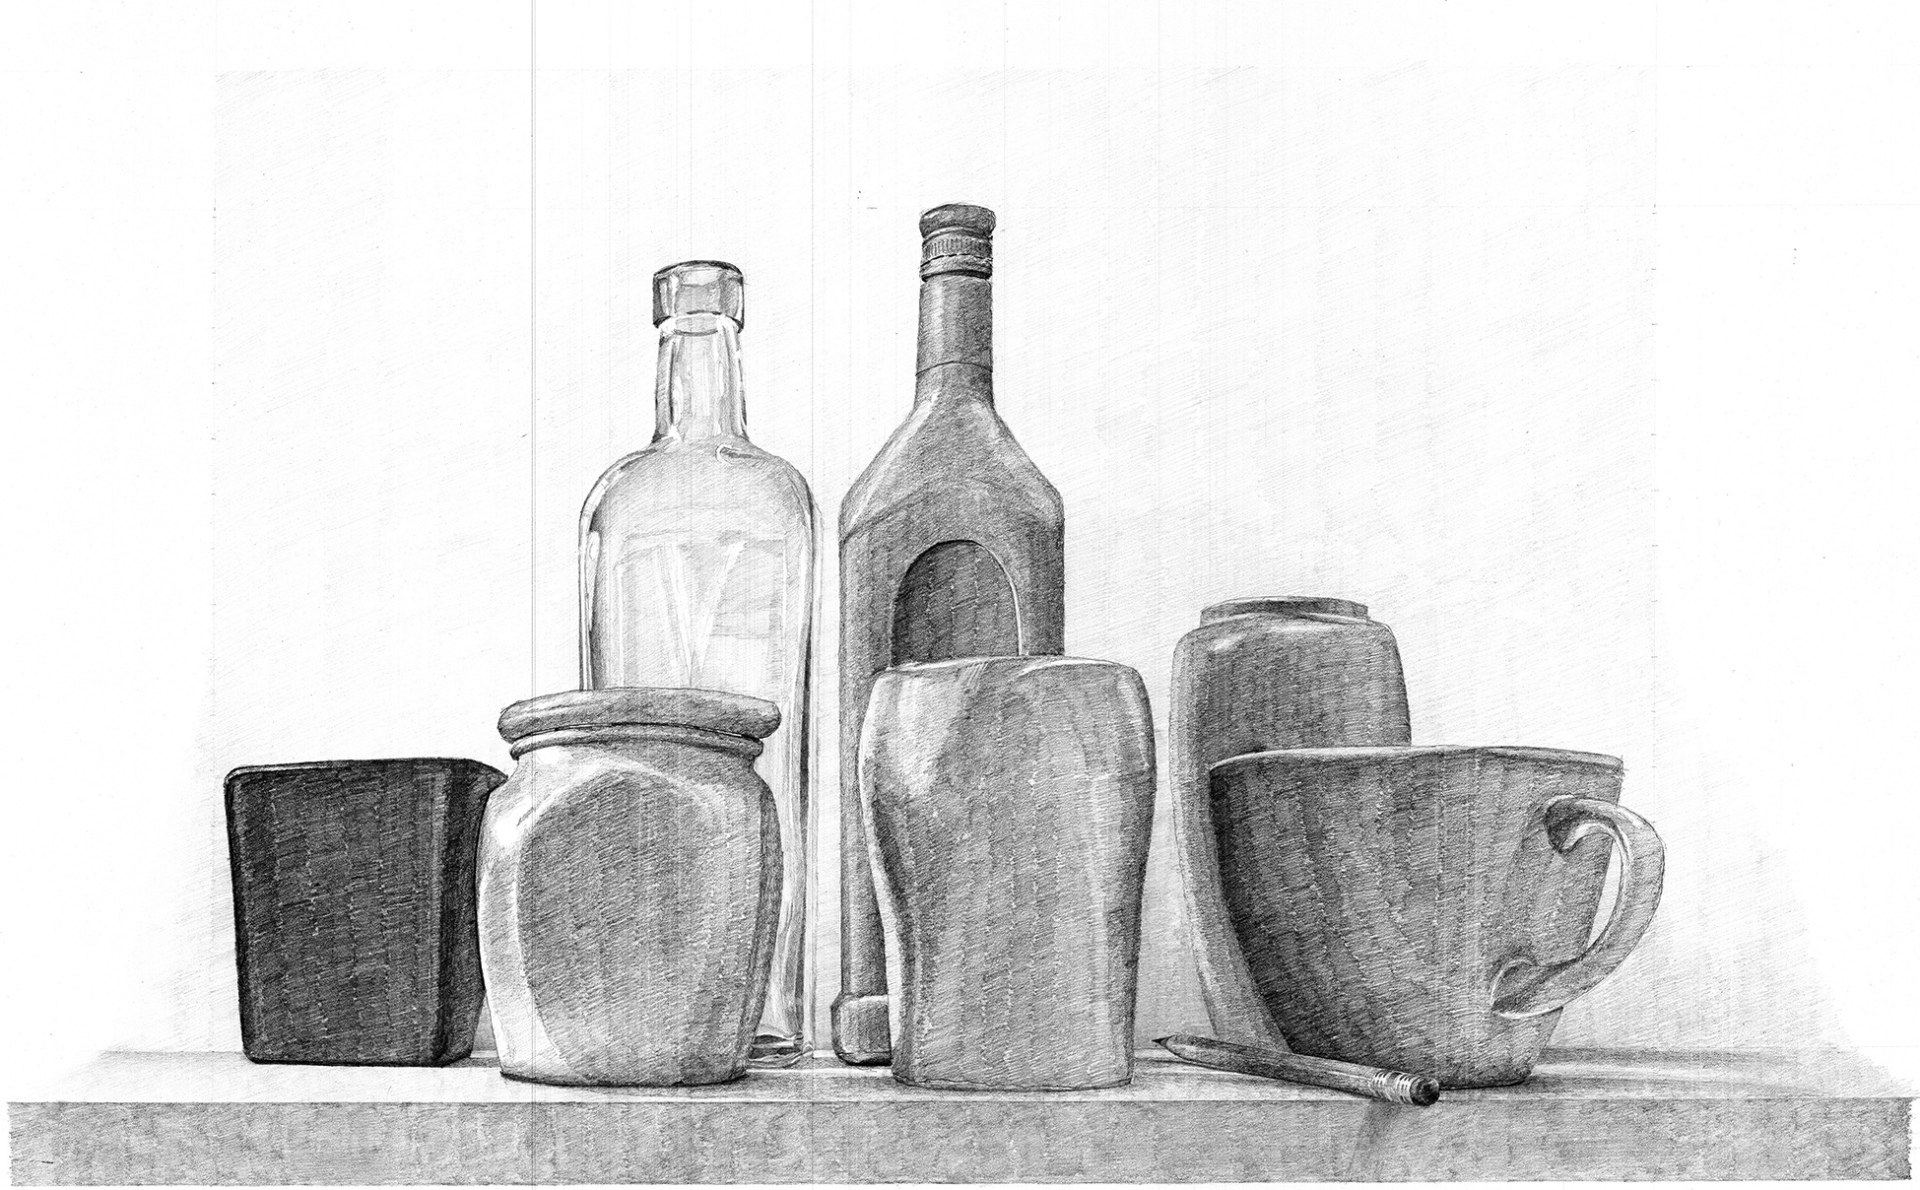 VBaudoin_G_4100-13_StillLifeDrawing